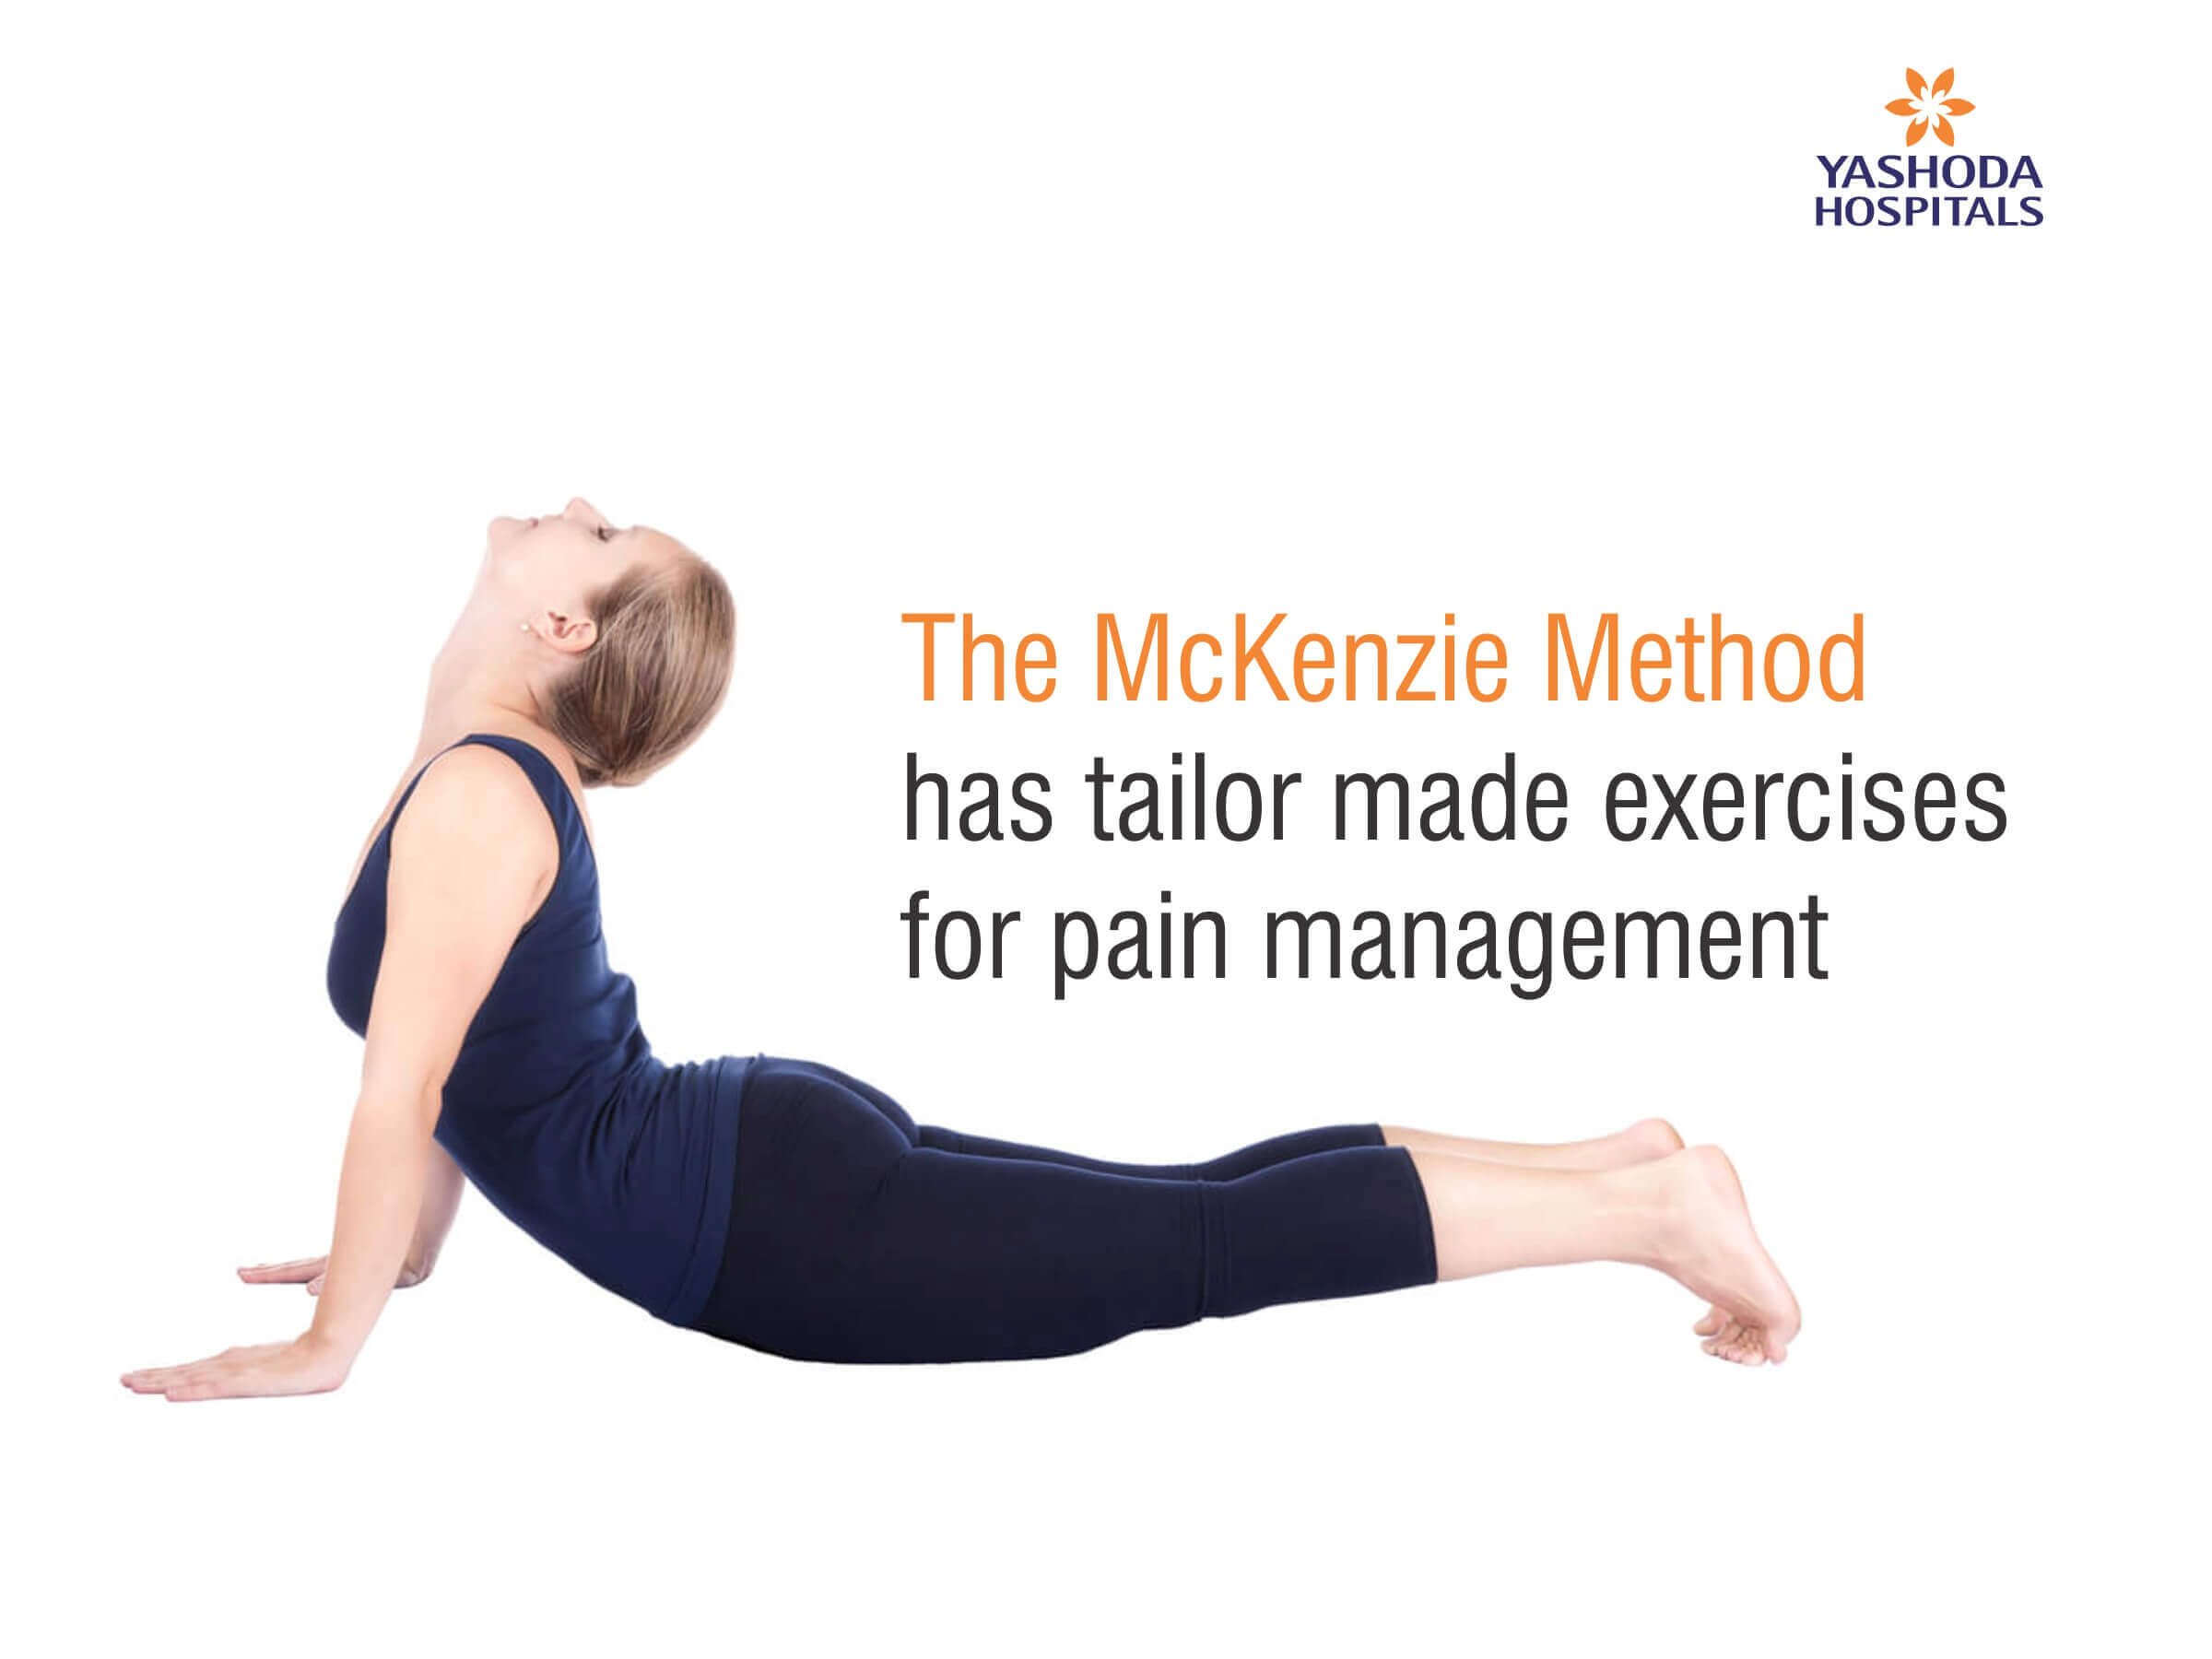 tailor made exercises